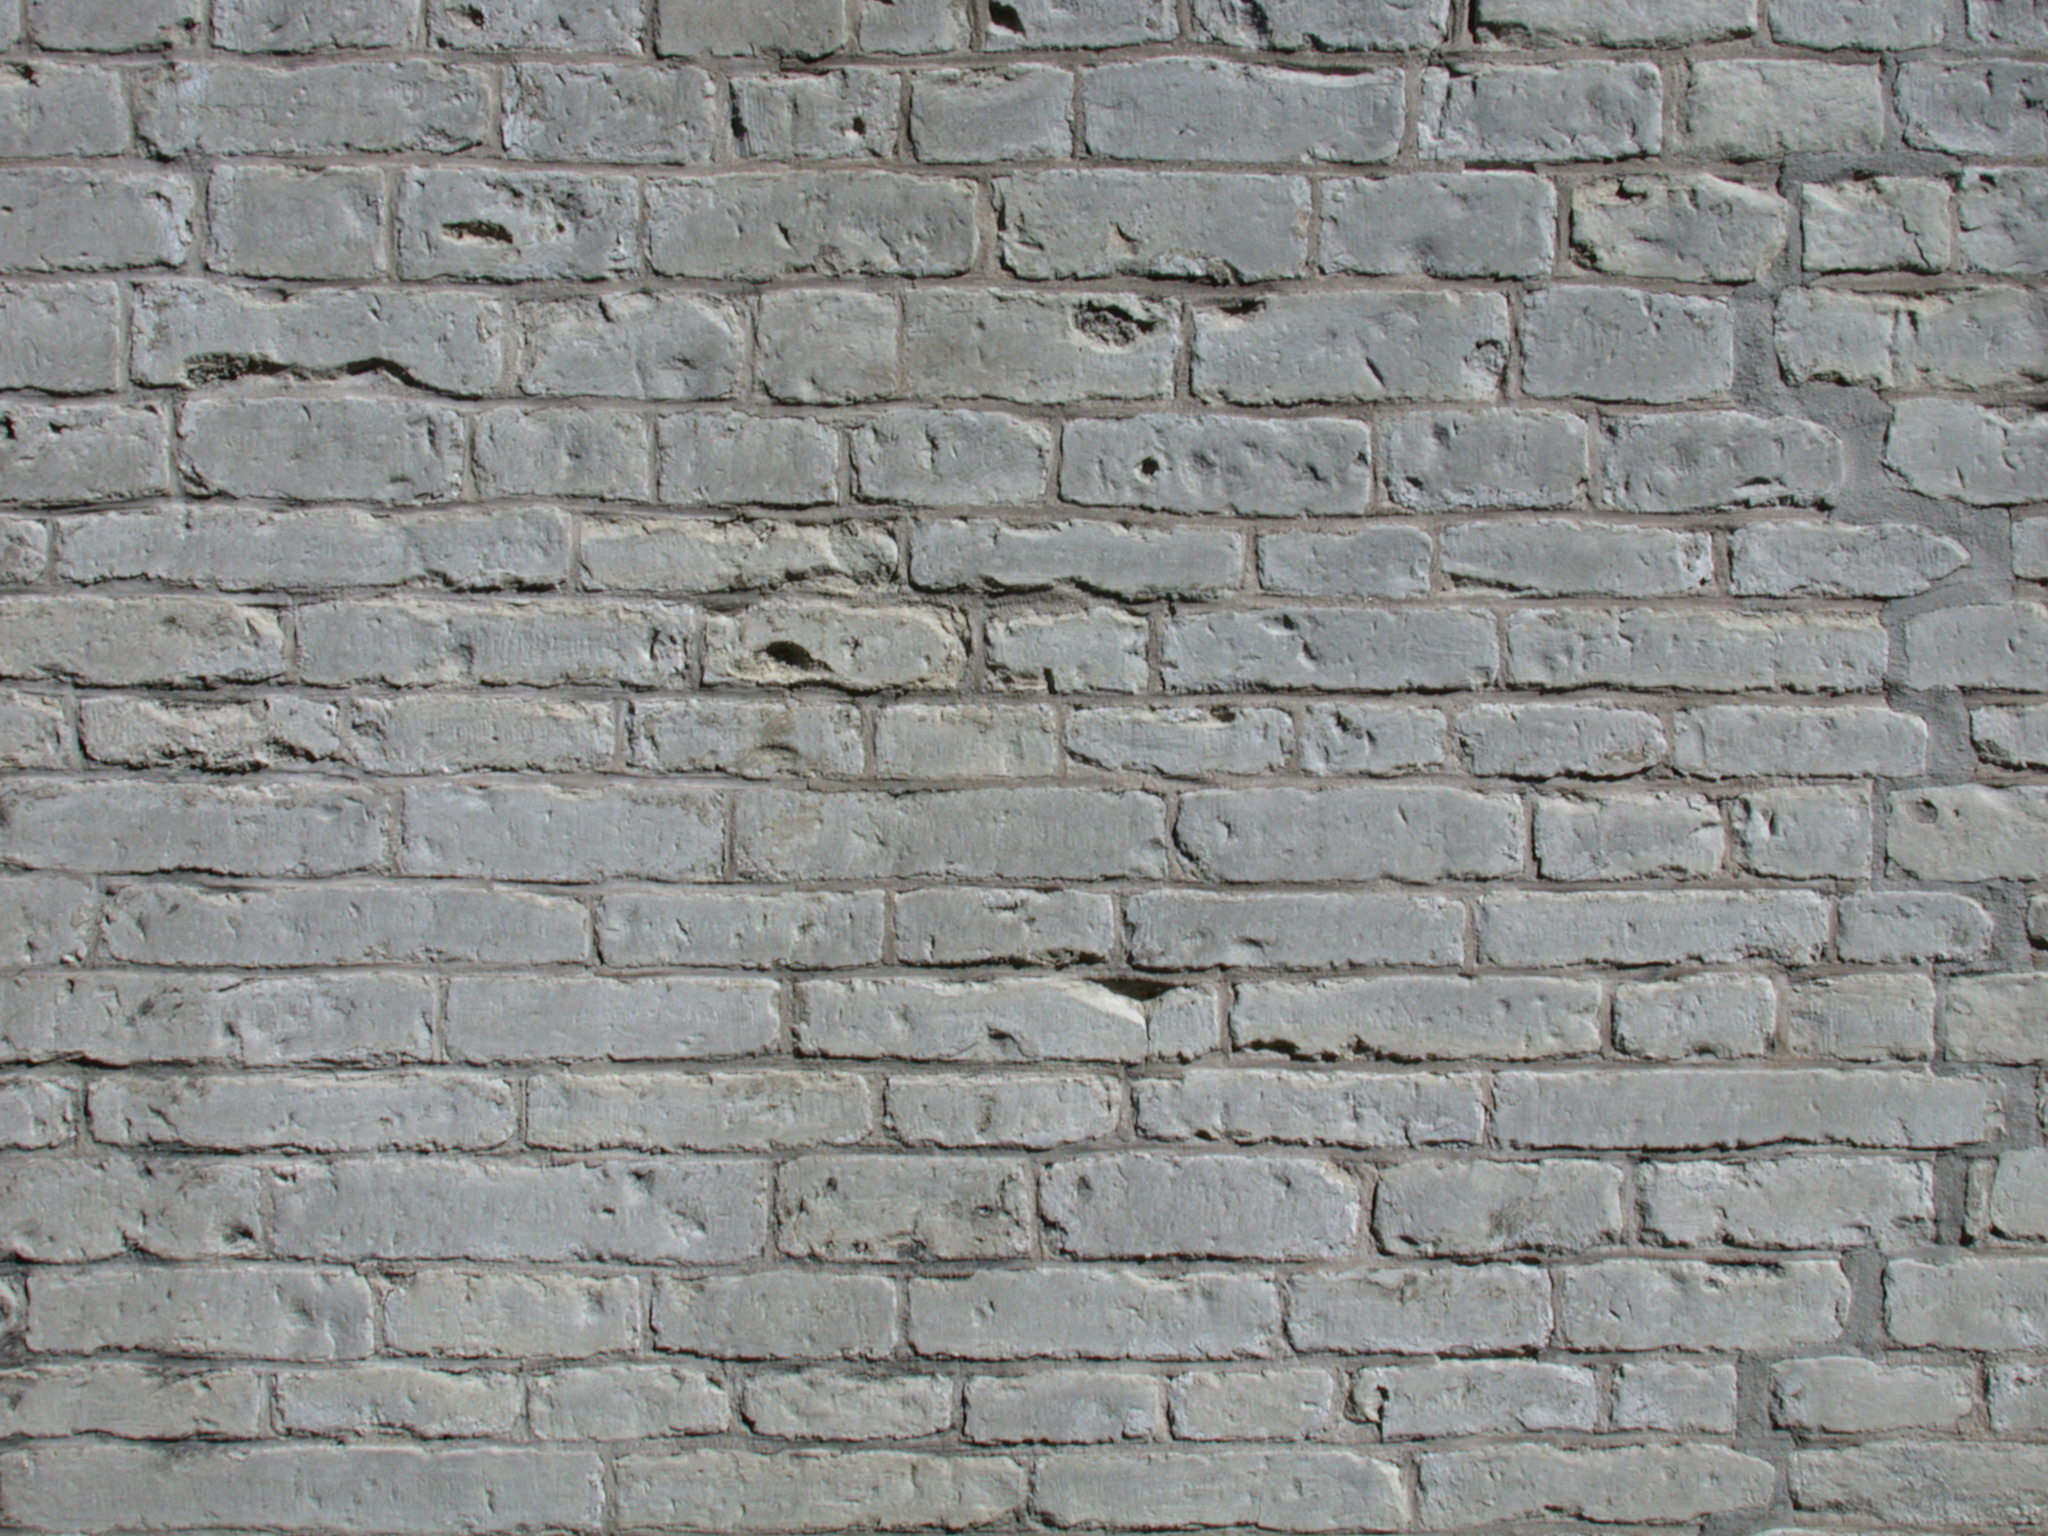 patterns on brick walls - photo #4